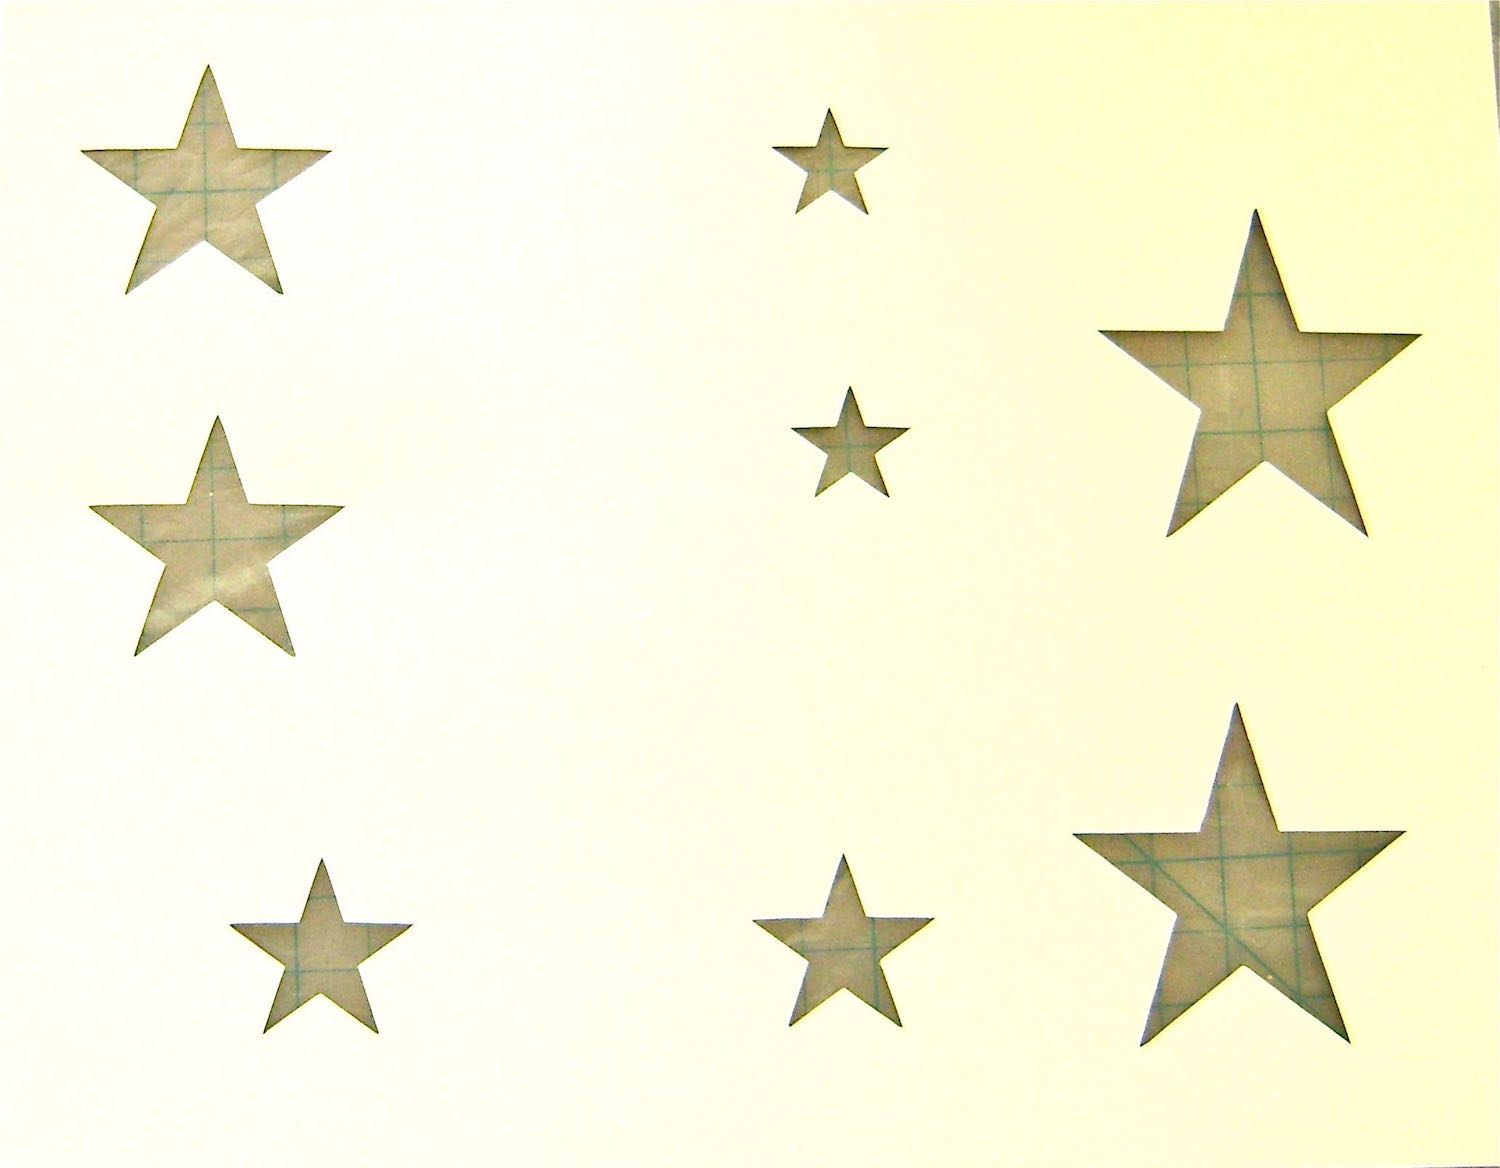 step 1 -  Draw stars in three different sizes on card stock and cut them out with a craft knife.